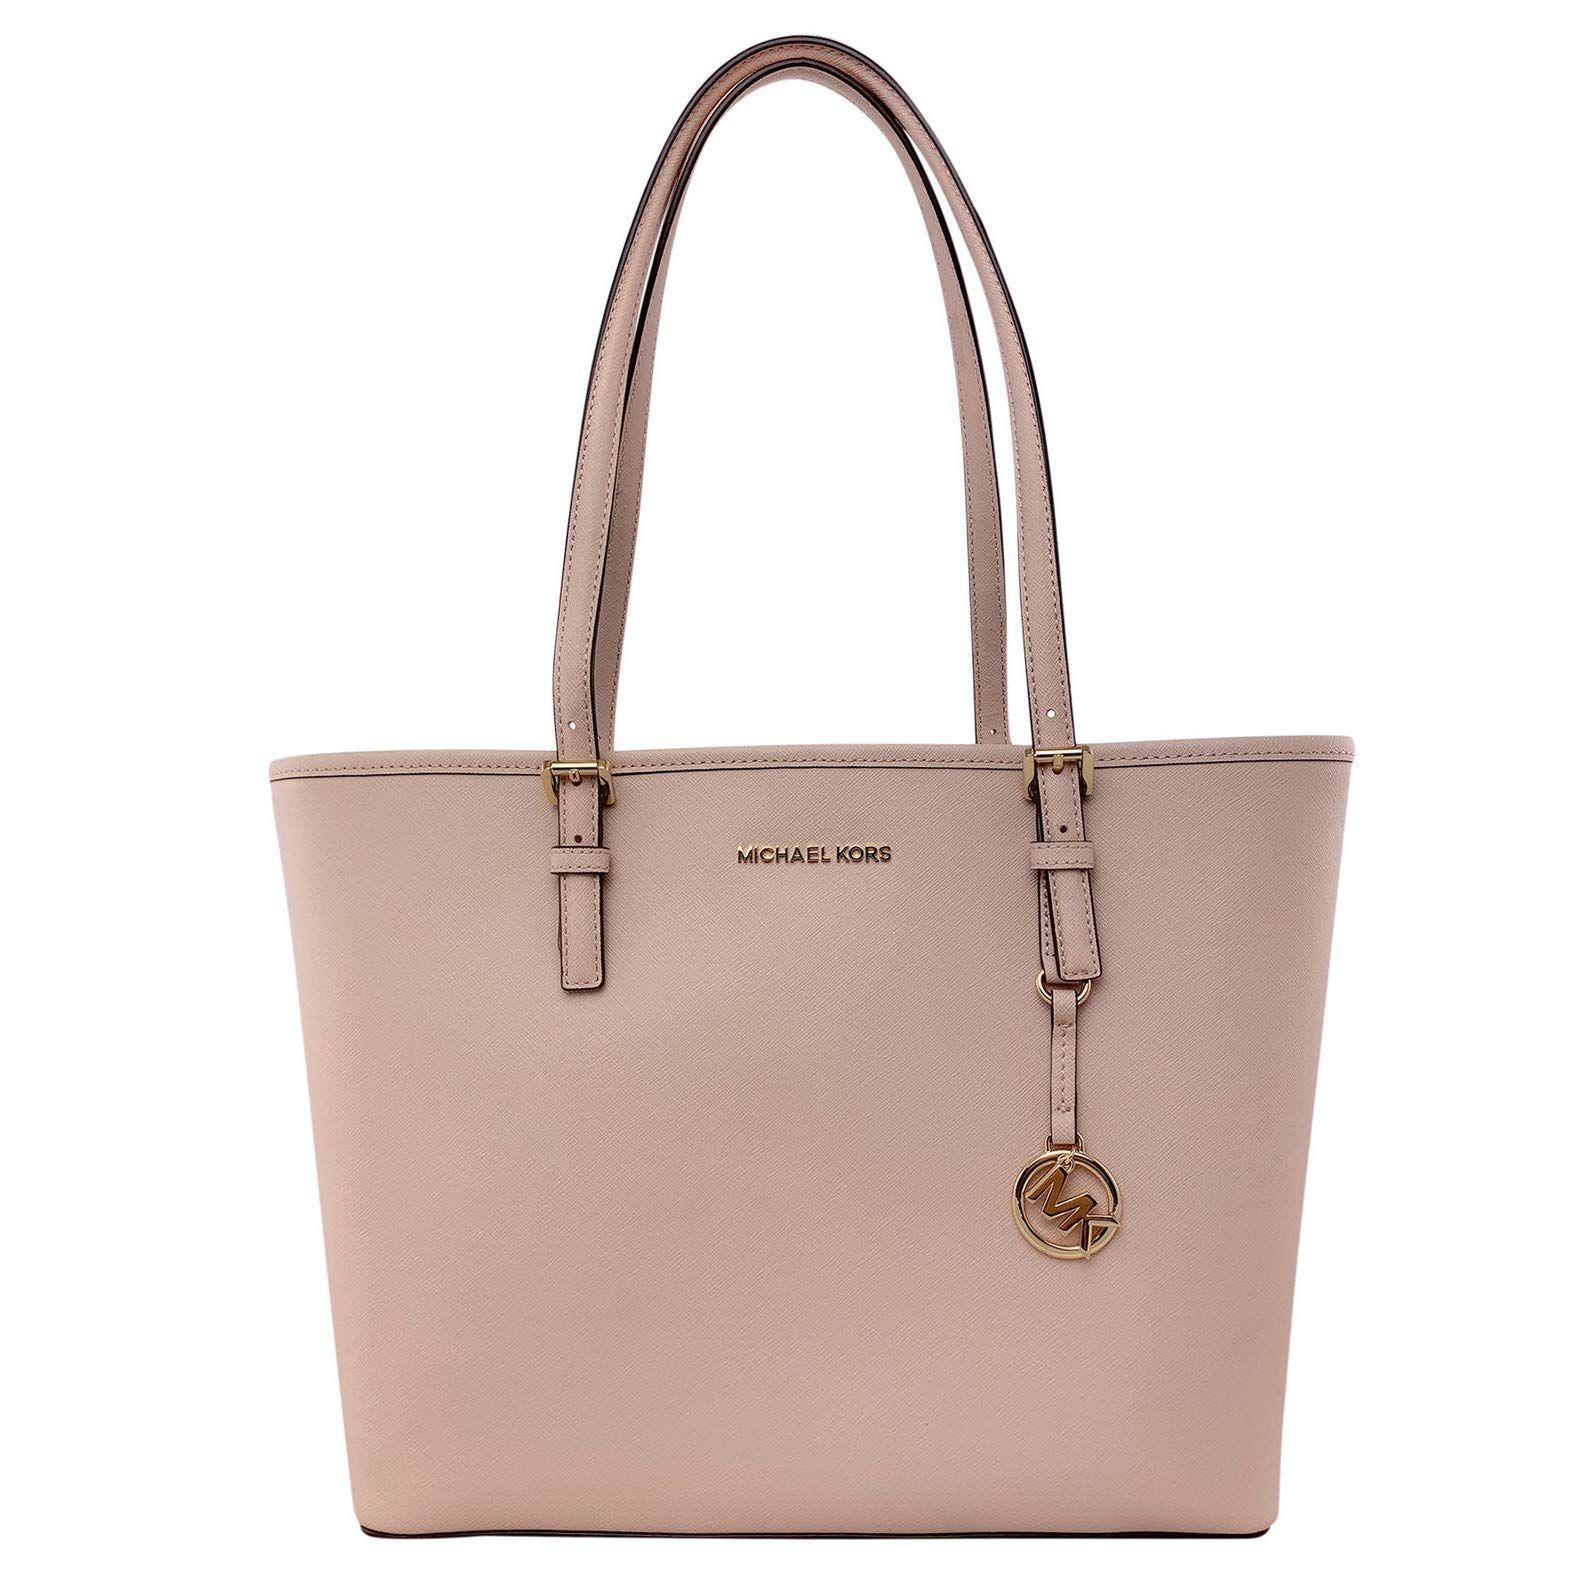 MICHAEL Michael Kors Jet Set Travel Medium Carryall Tote Saffiano Leather - Ballet by Michael Kors